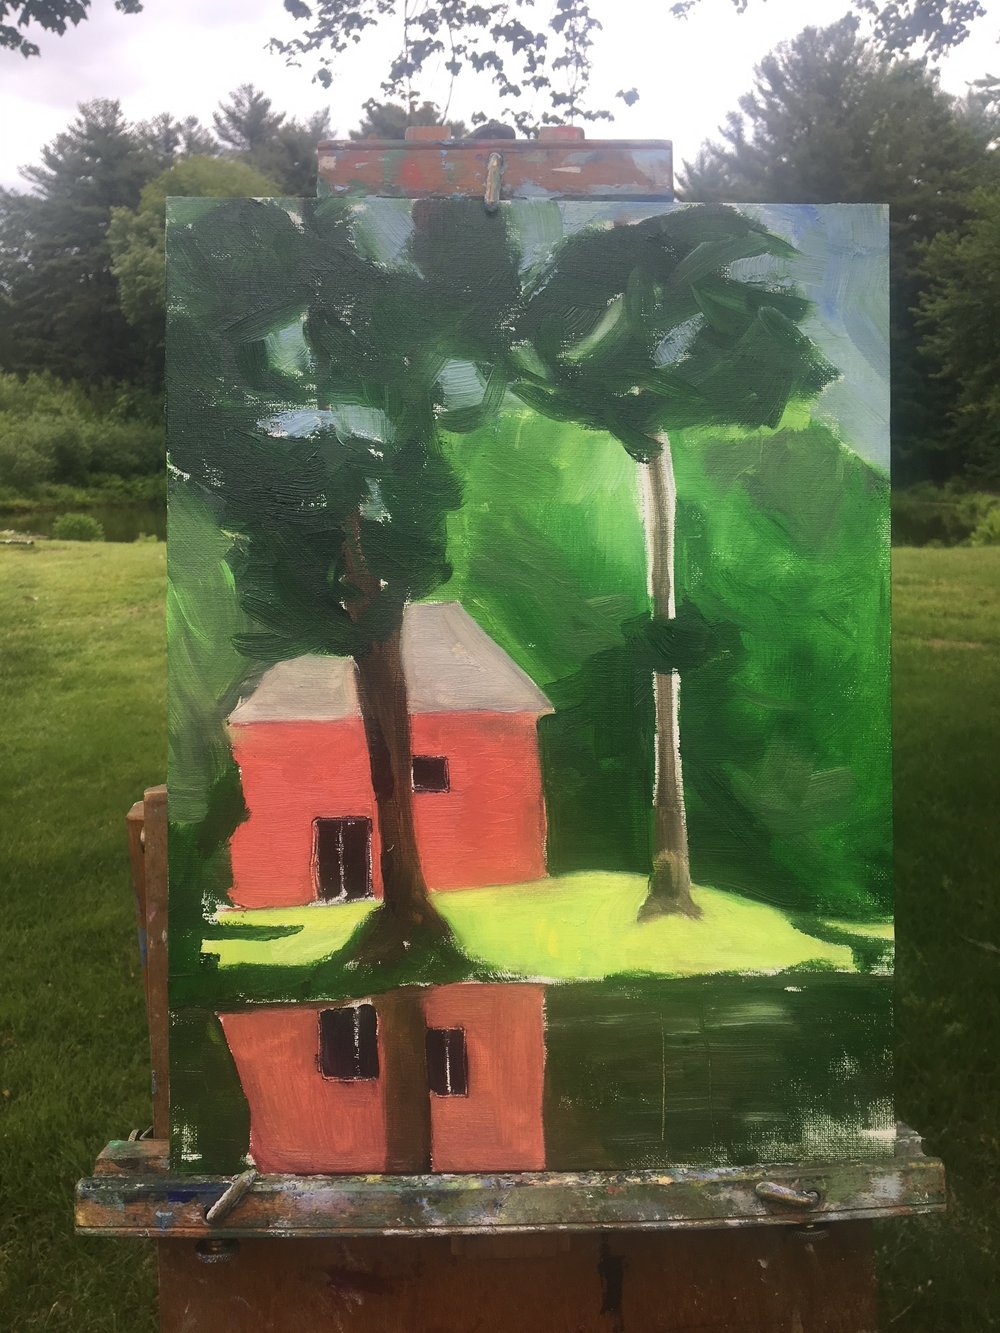 Painting from the last (5th) class...I can see a big difference in what I learned here. While water in the foreground is dark and reflection a little awkward, overall I am pleased with this one!I love how the shadow and light on the bright green grass came out. And the trees in front really do bring the perspective and depth into the painting. This was also my largest panel!